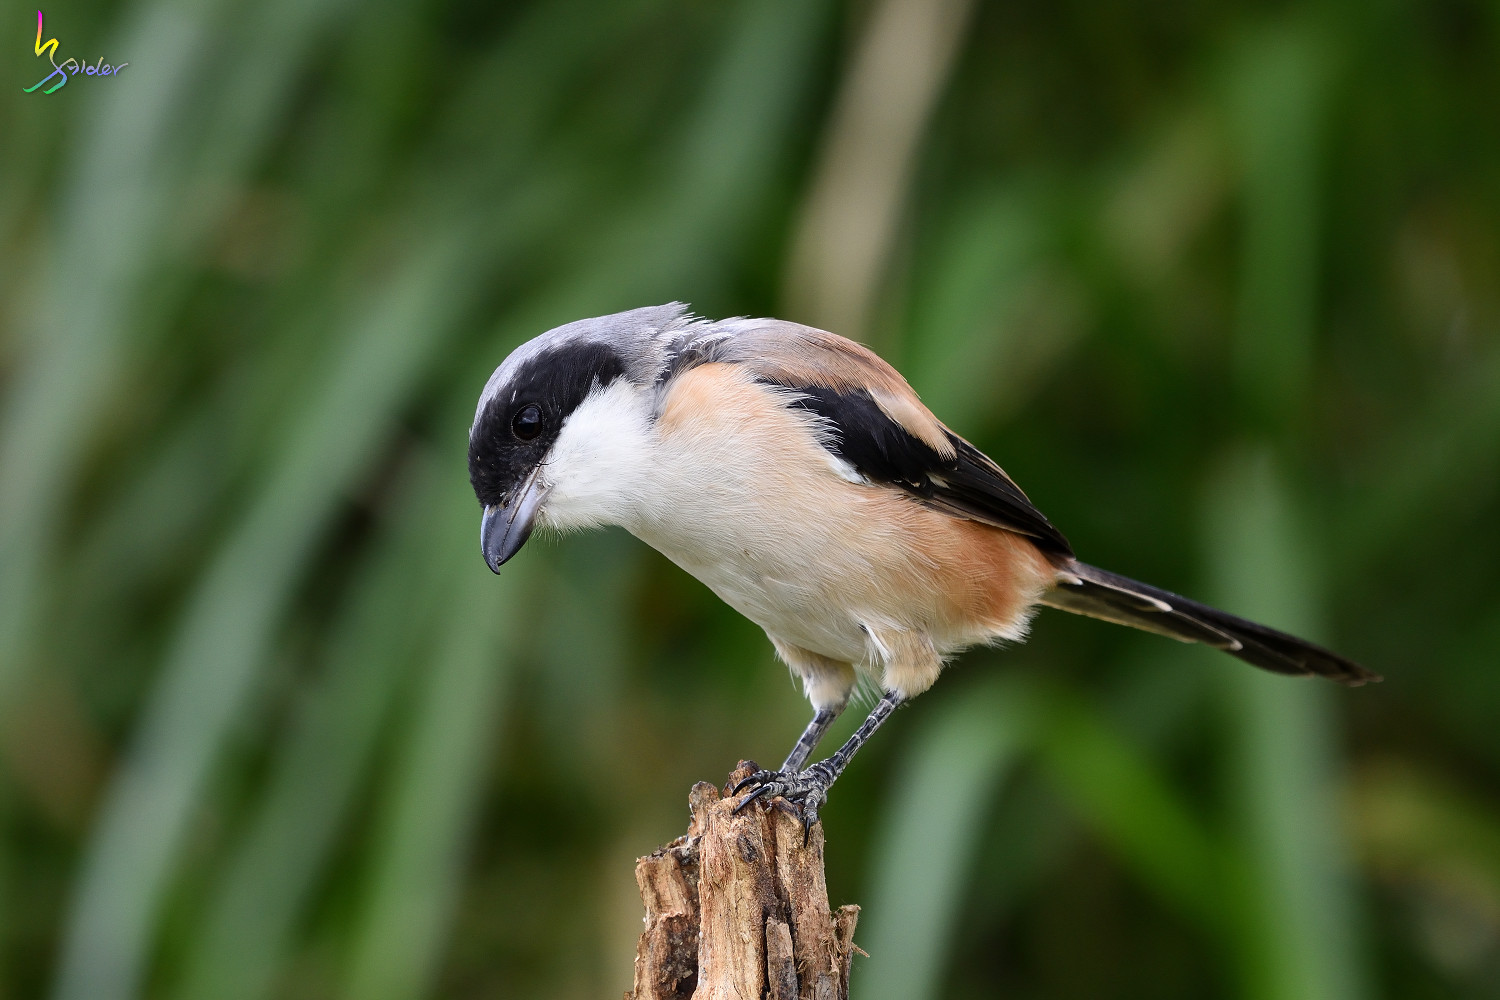 Long-tailed_Shrike_0921